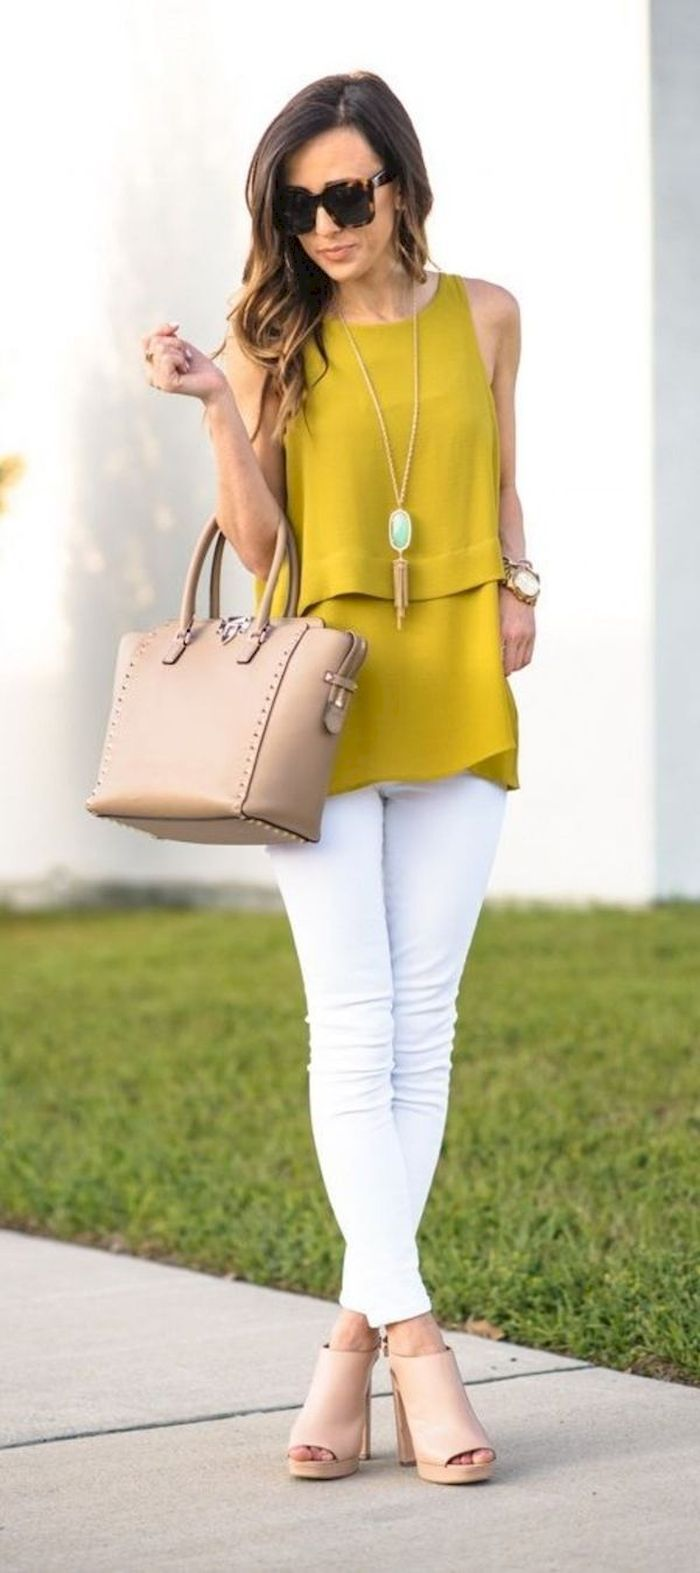 41 Simple Casual Spring Business Outfits for Women Over 40